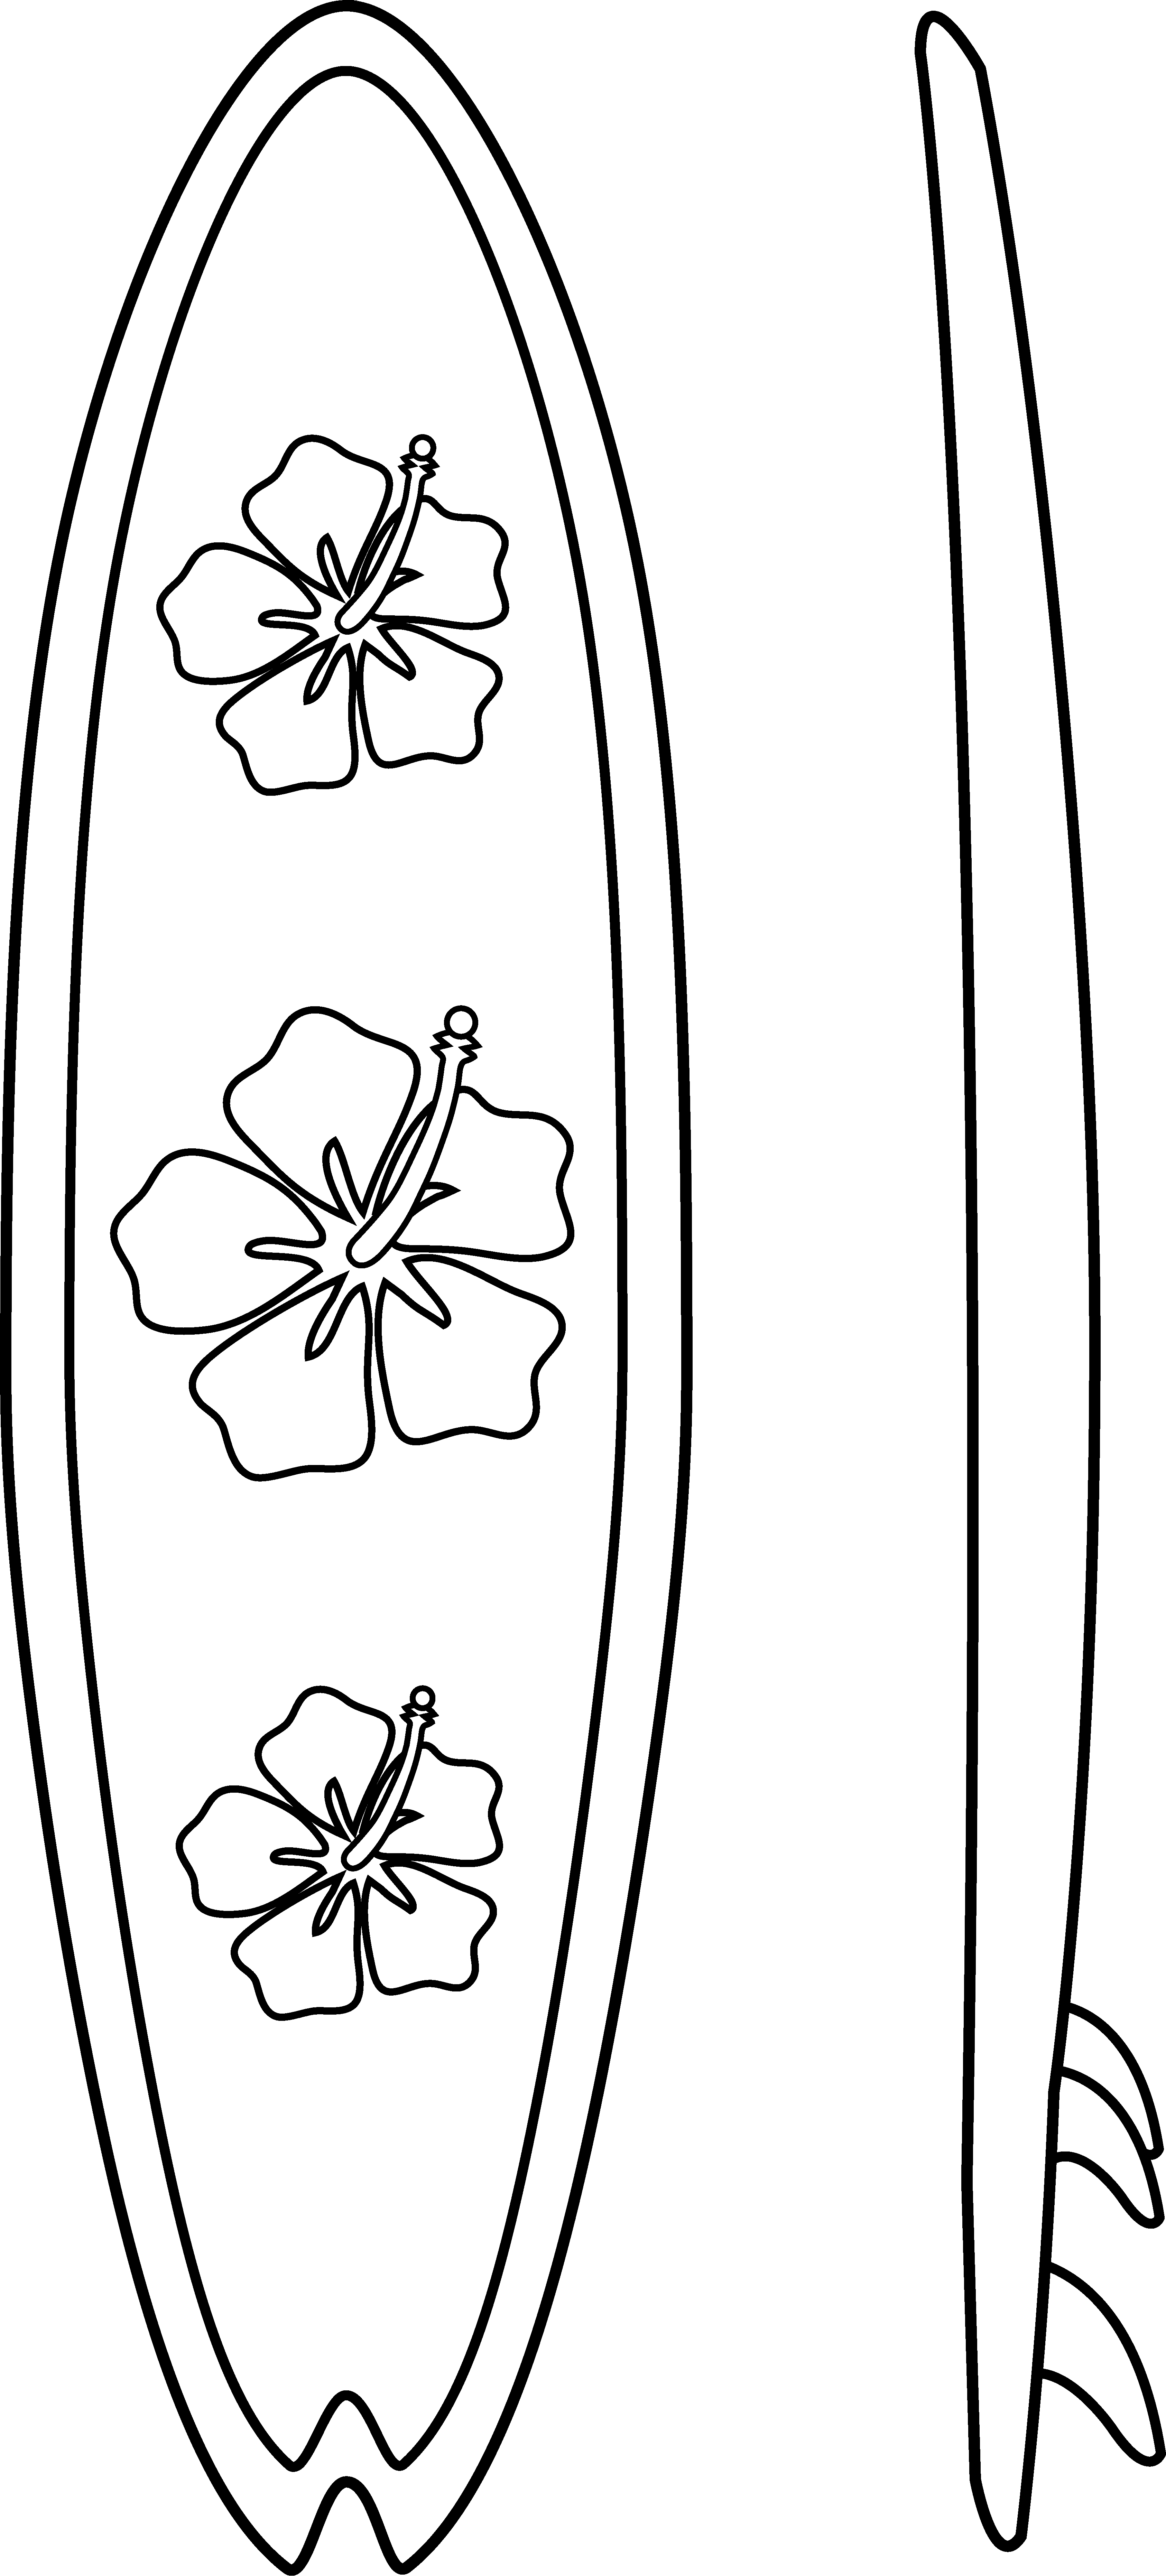 Surfboard clipart black and white banner free stock Surf board outline clipart - ClipartFest banner free stock